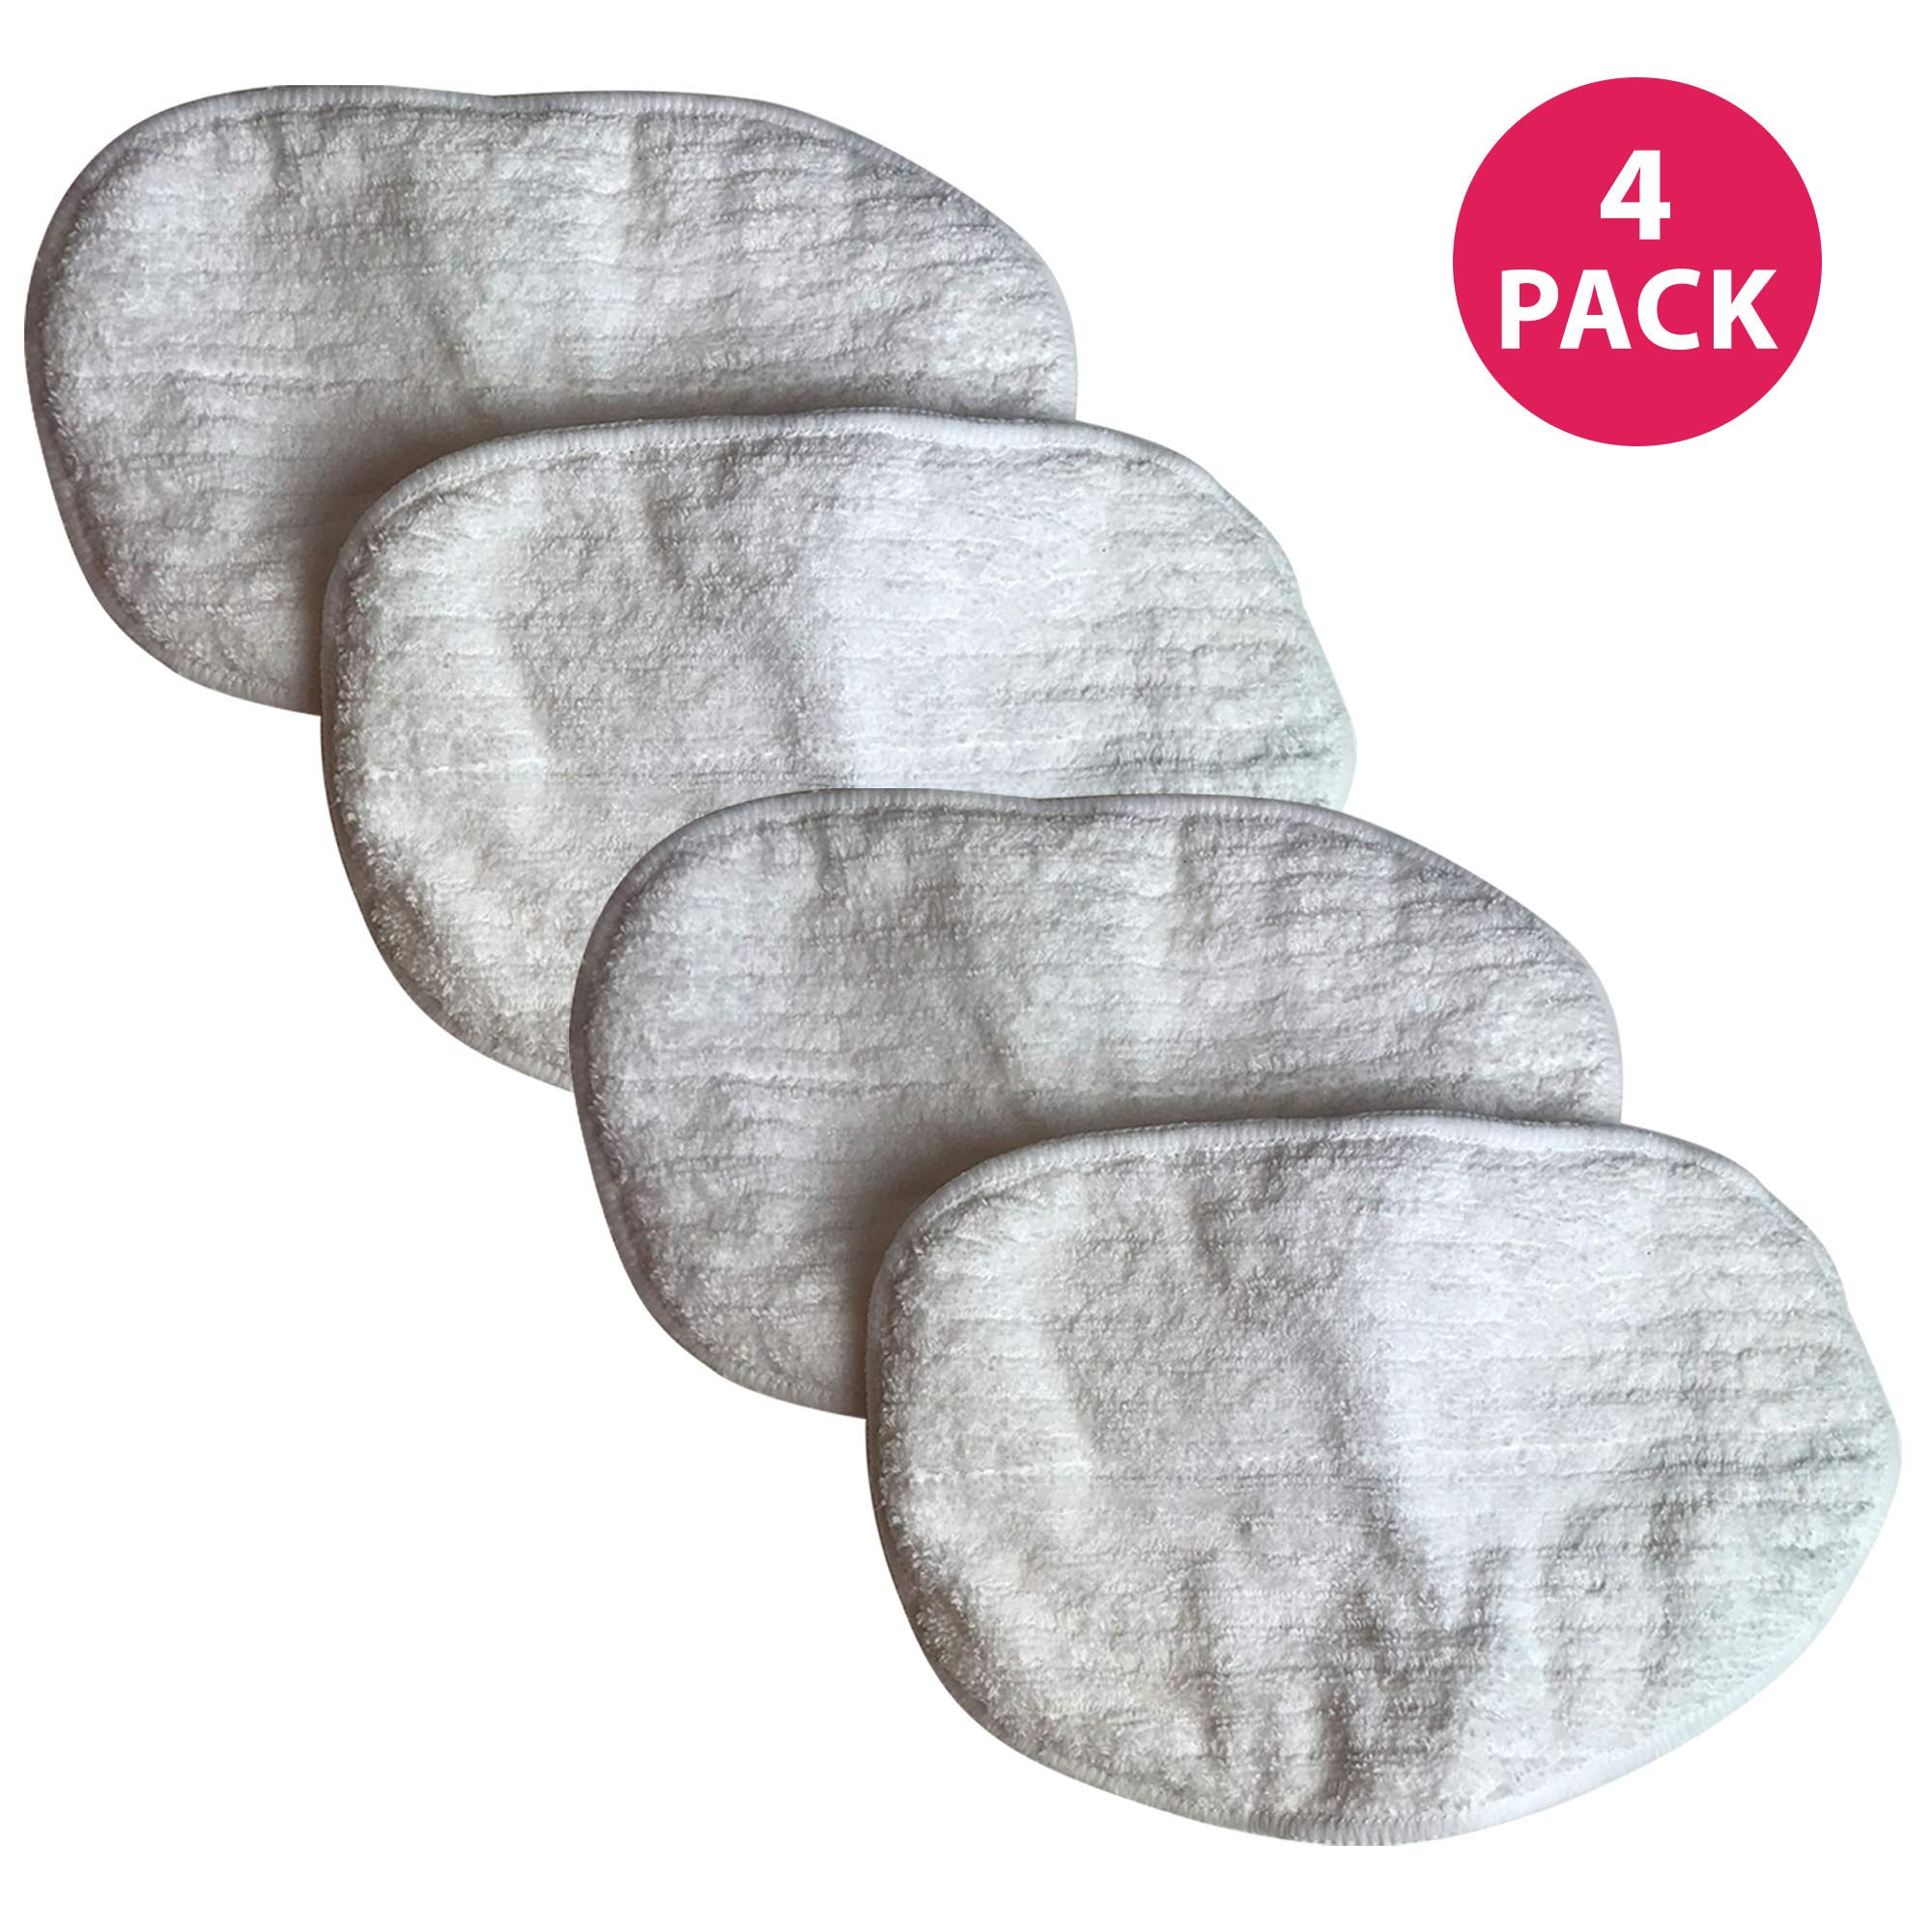 Think Crucial Replacement Mop Pads Compatible with Bissell Replacement Microfiber Steam Mop Pad Parts - Hardwood Mop Head Part - Parts 203-2158, 2032158, 3255, 32525 Model 1867 - Bulk (4 Pack) by Crucial Vacuum